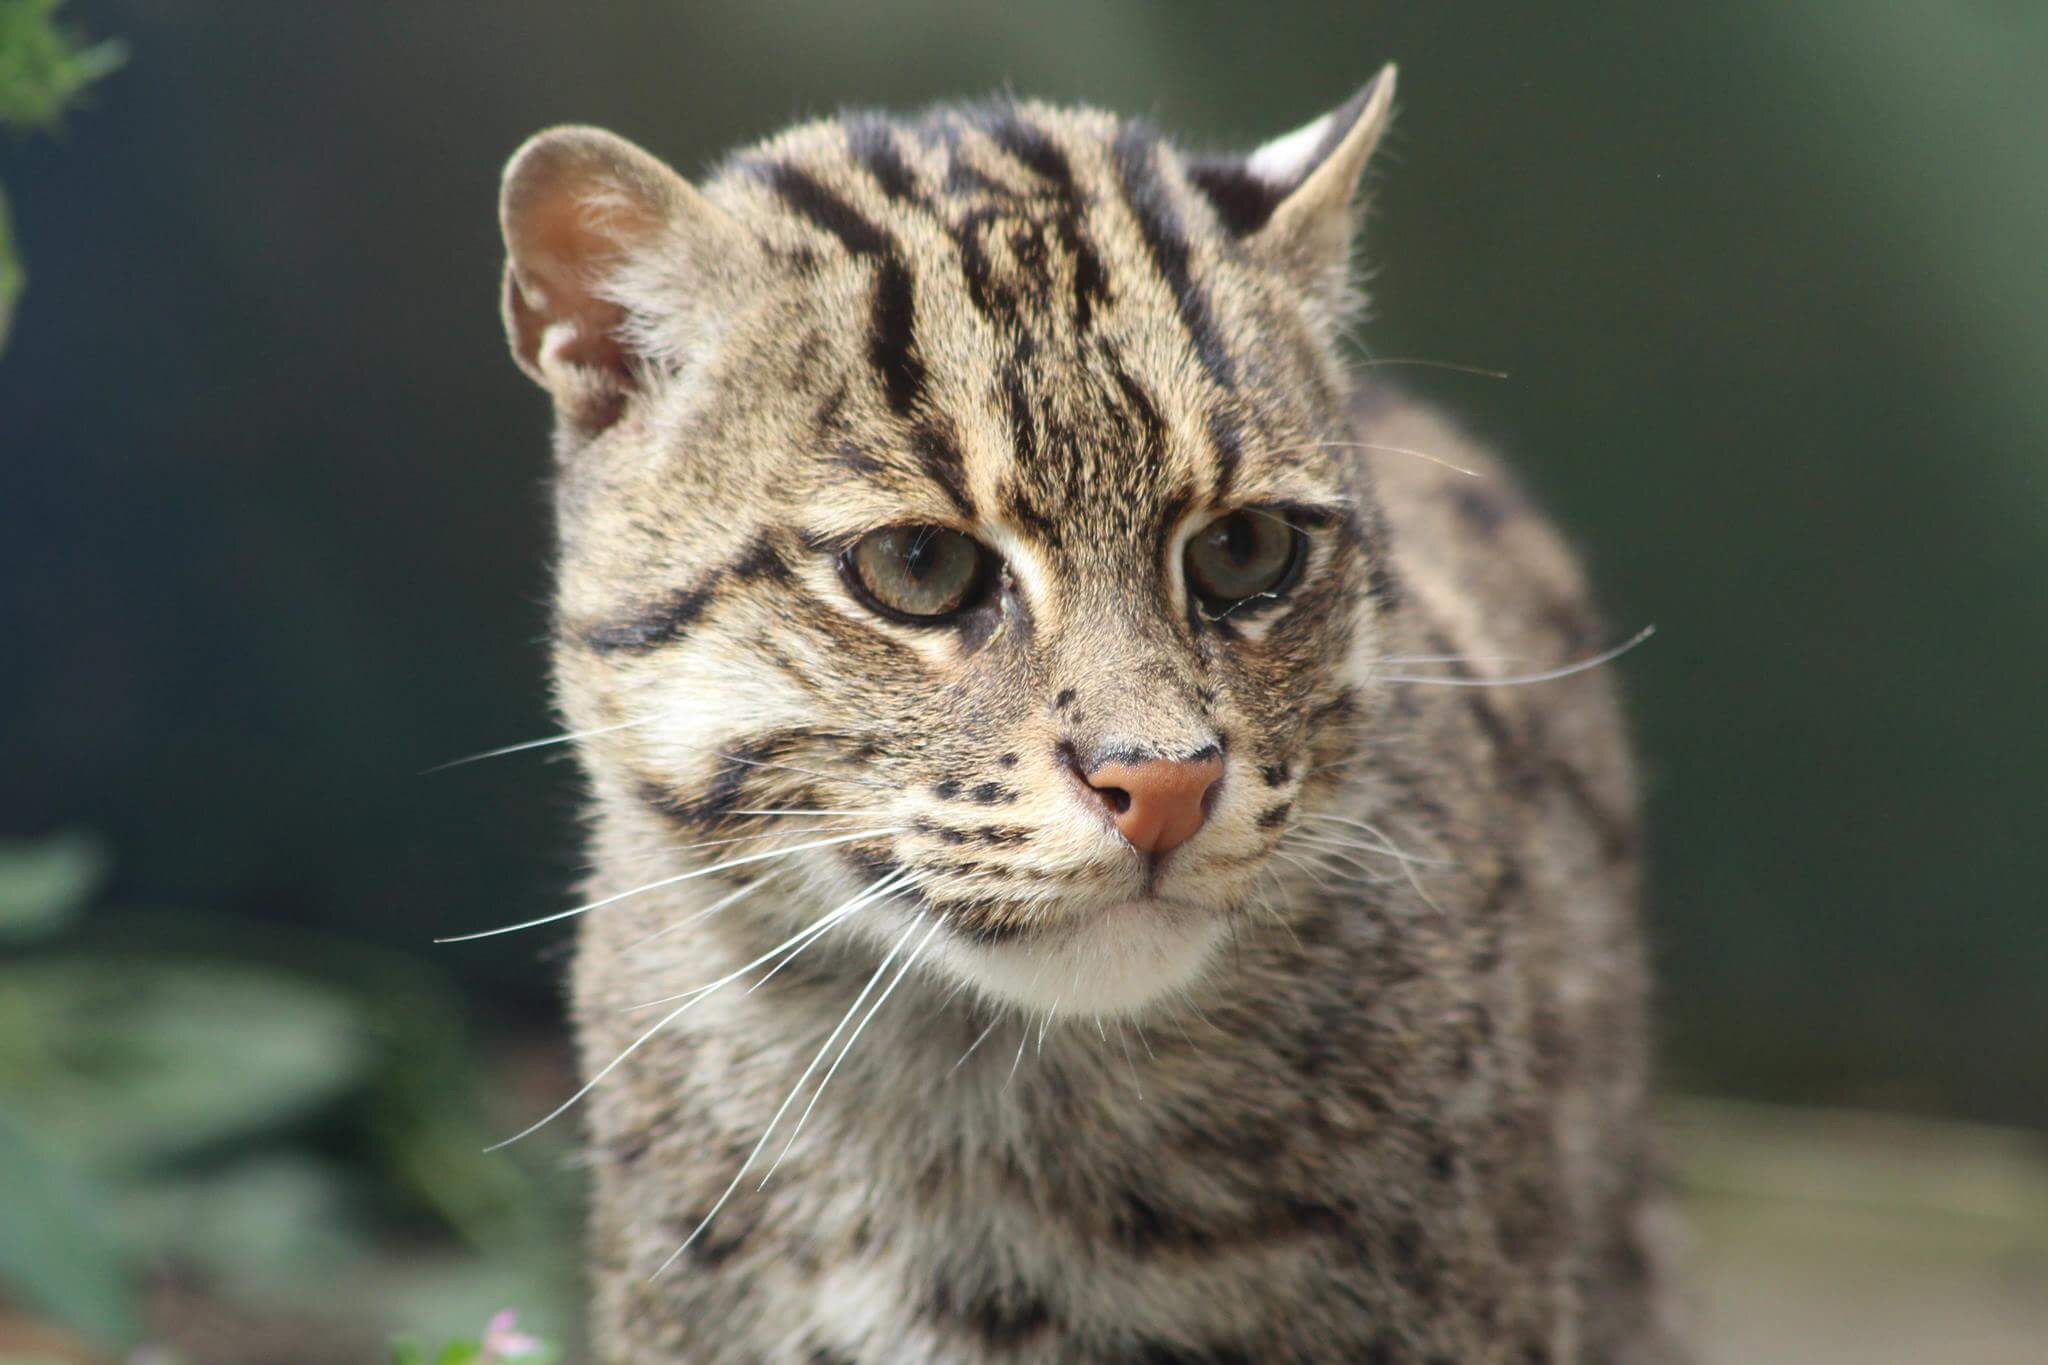 Fishing cat five sisters zoo for The fishing cat